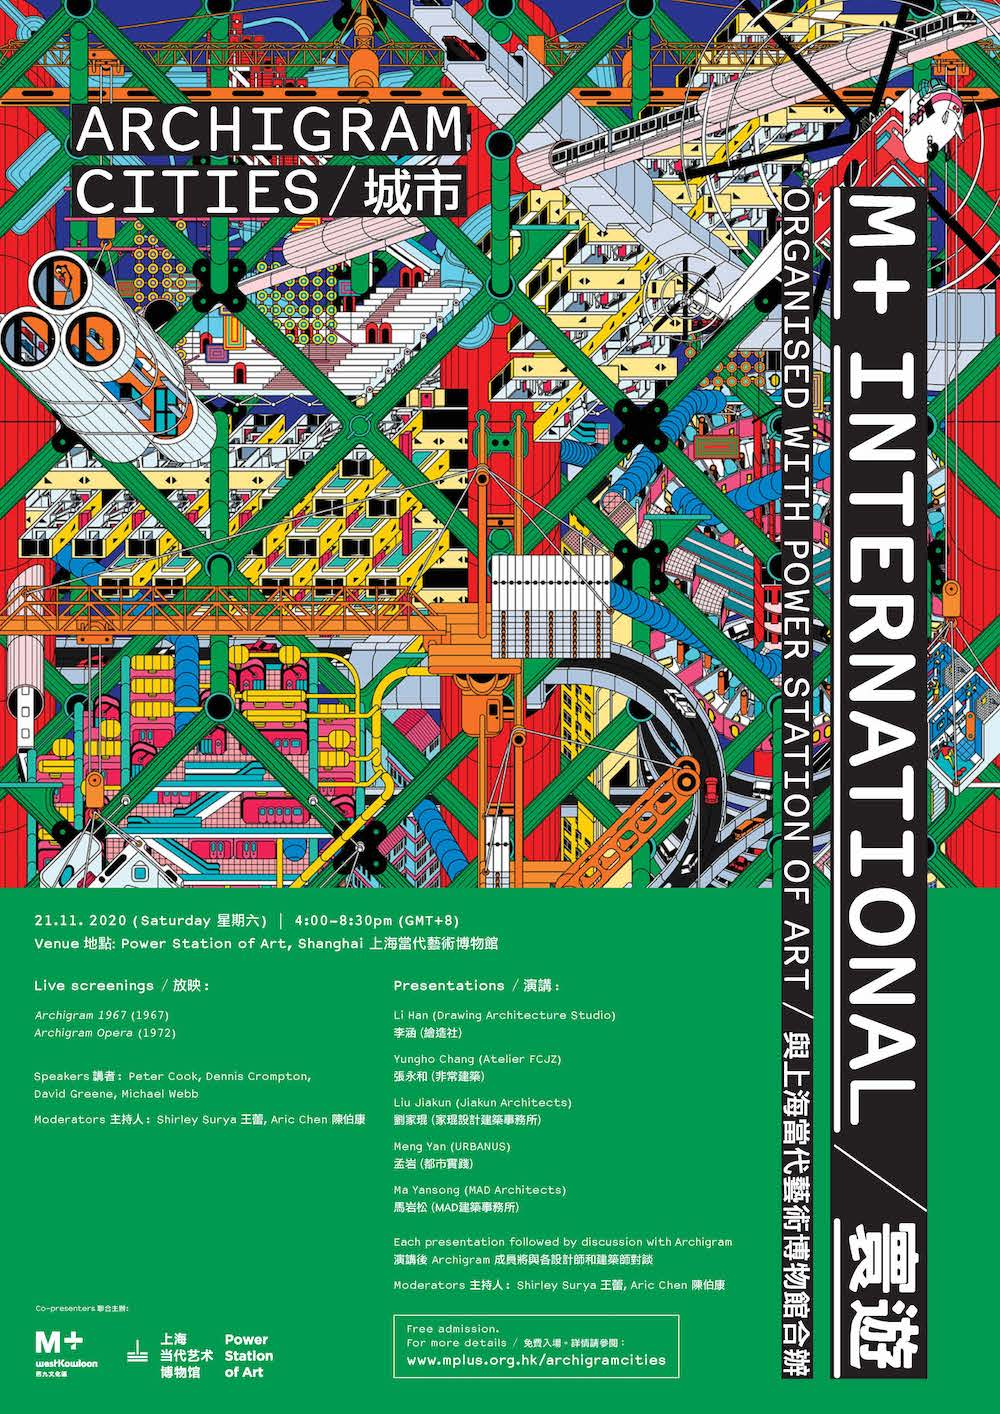 poster for Archigram Cities event